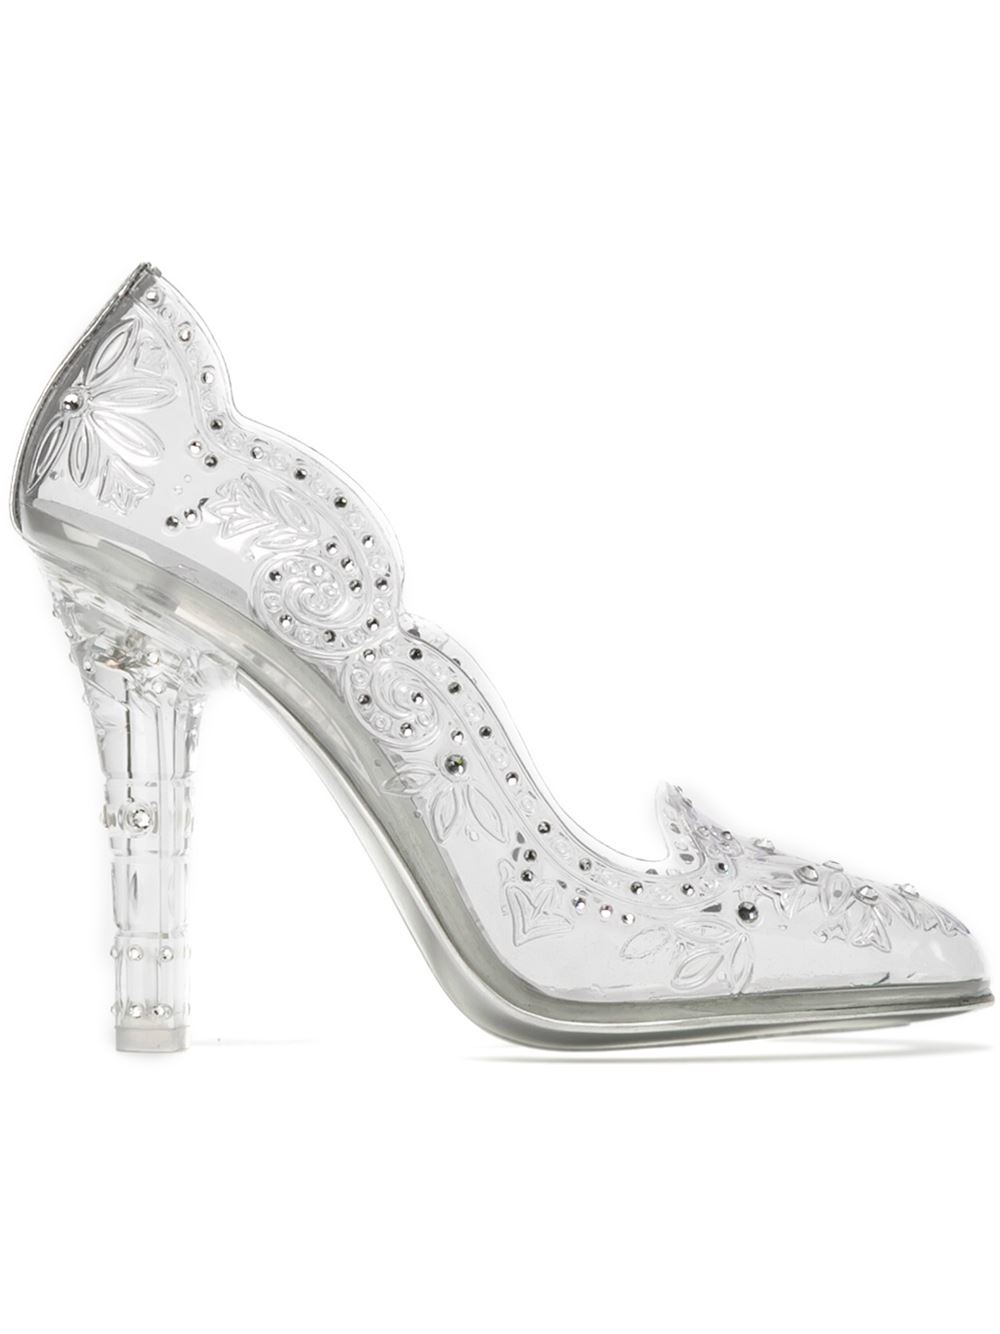 cdd47a58946 Lyst - Dolce   Gabbana Embellished Clear Pumps in White